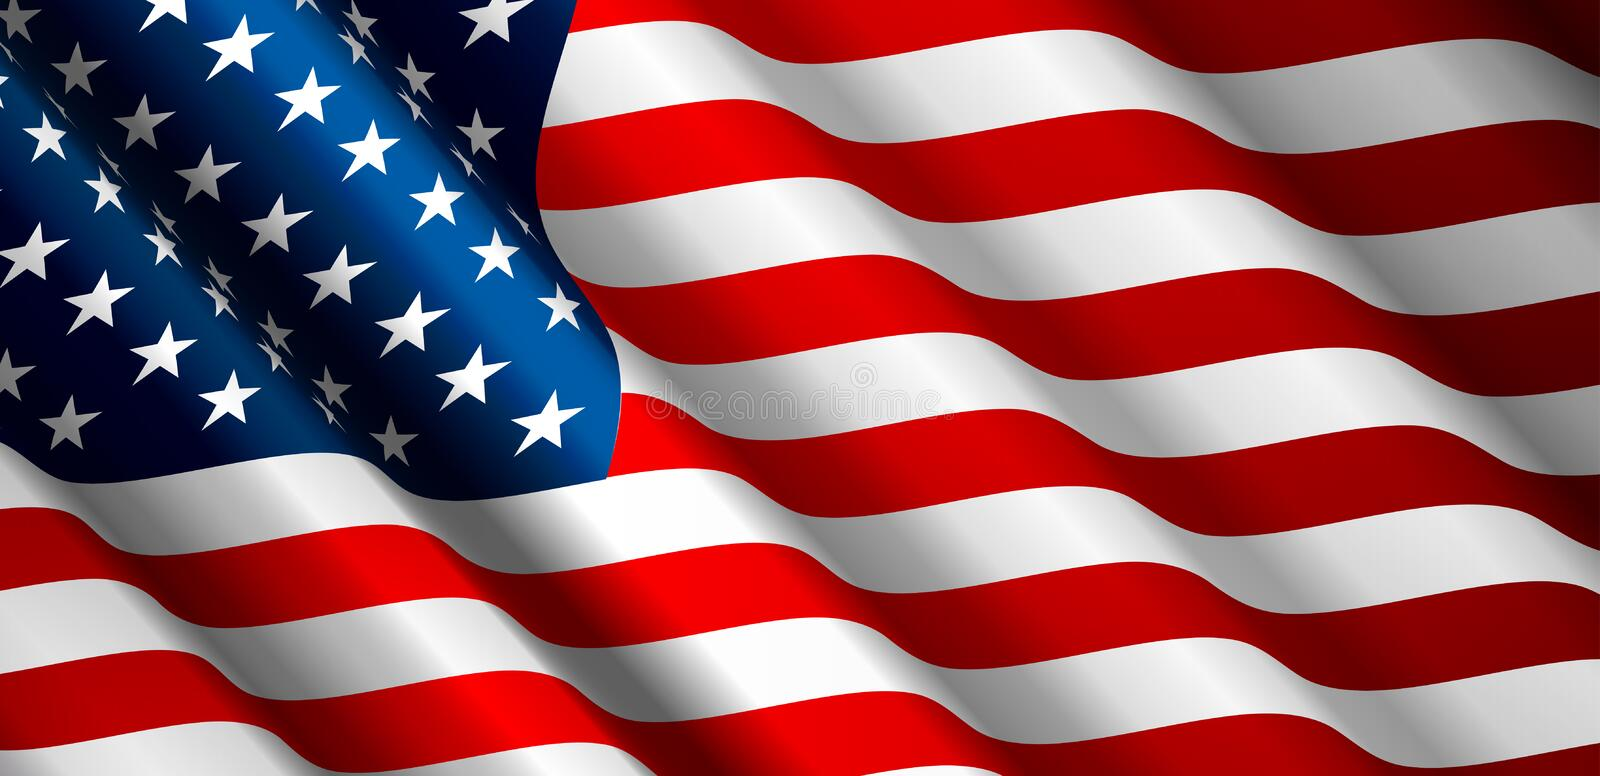 United States Flag Vector stock illustration